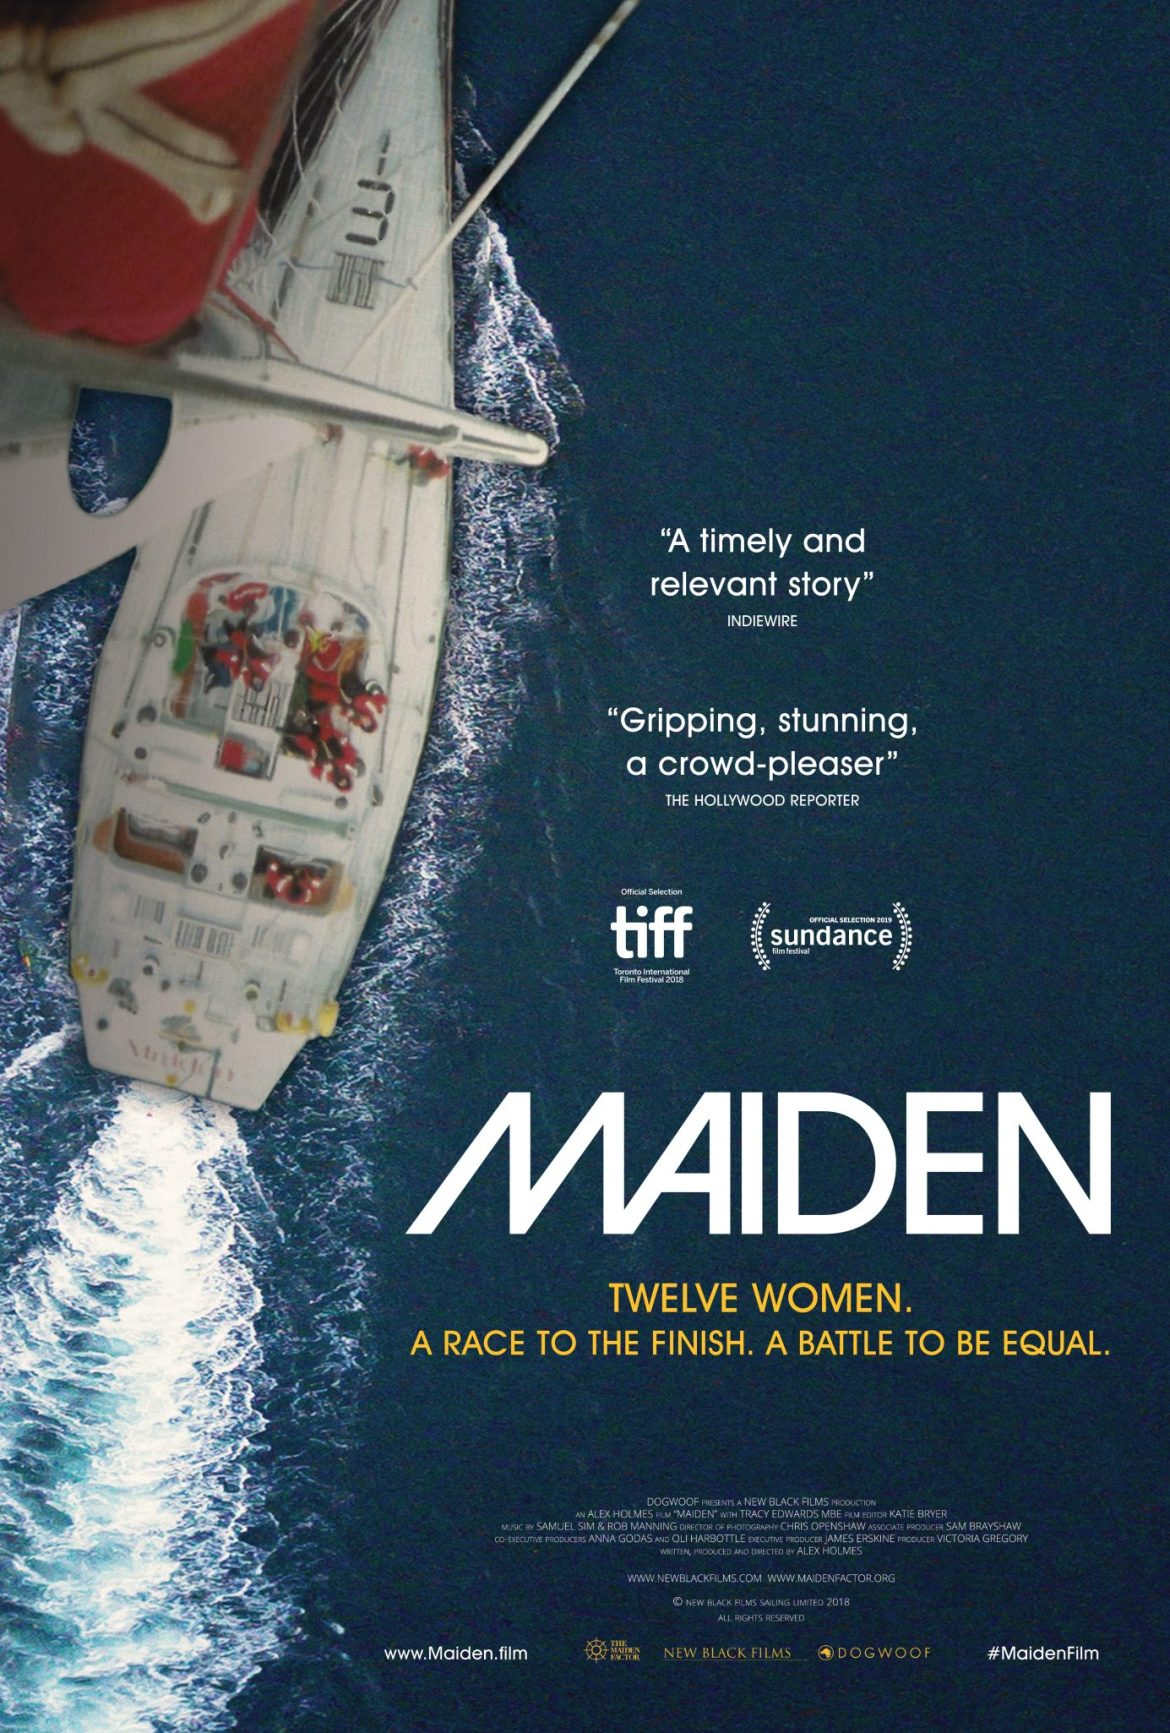 mainden-film-tracy-edwards-whitbread-around-the-world-yacht-race